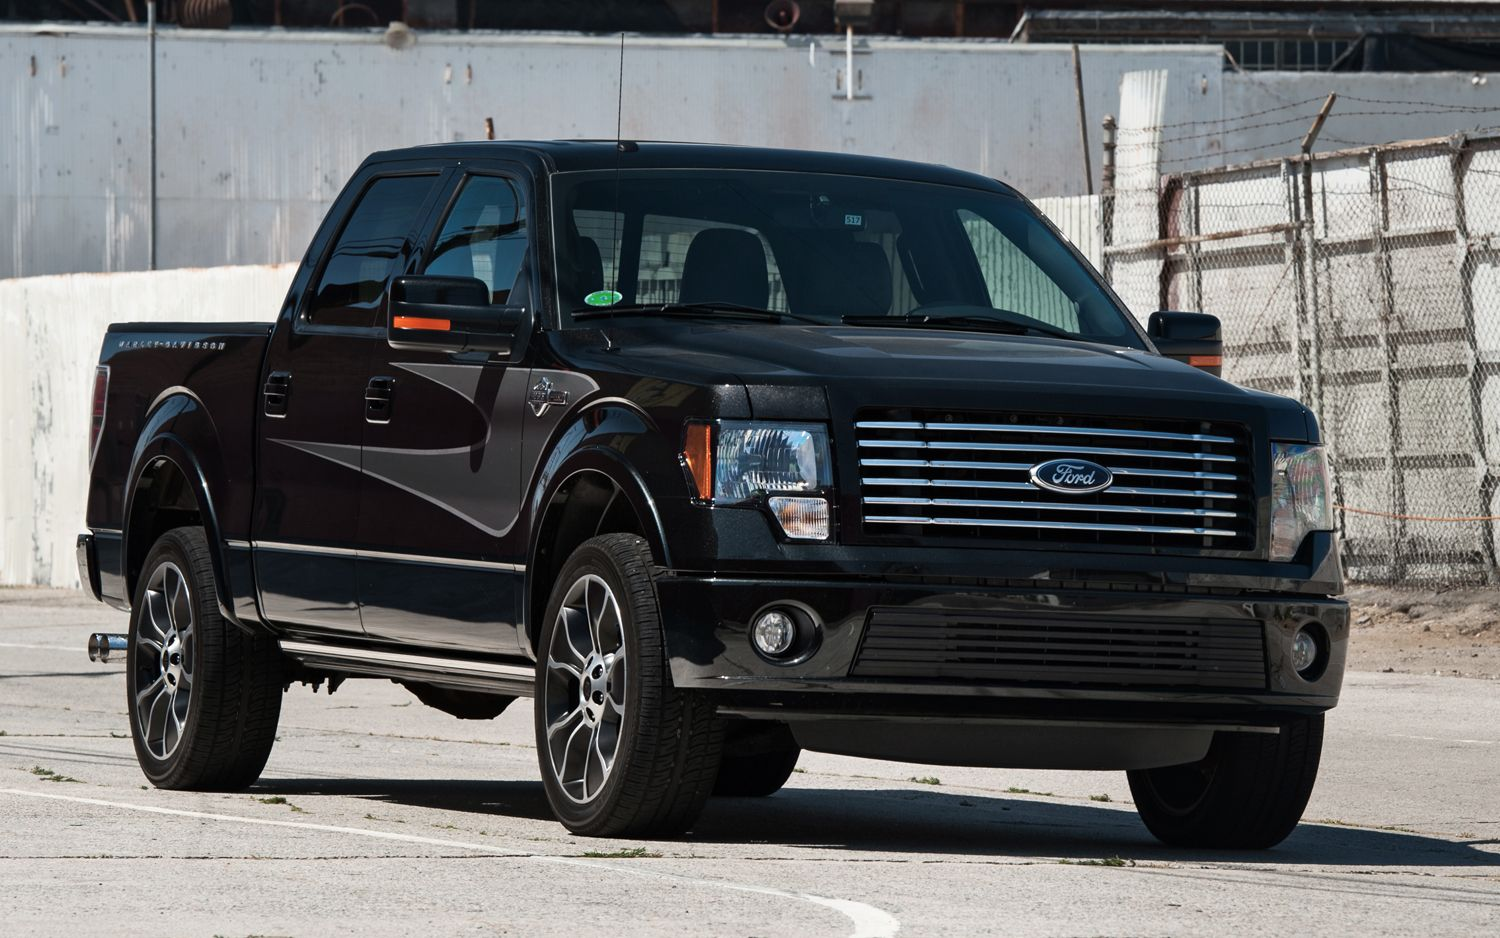 2012 ford f 150 supercrew harley davidson edition front view